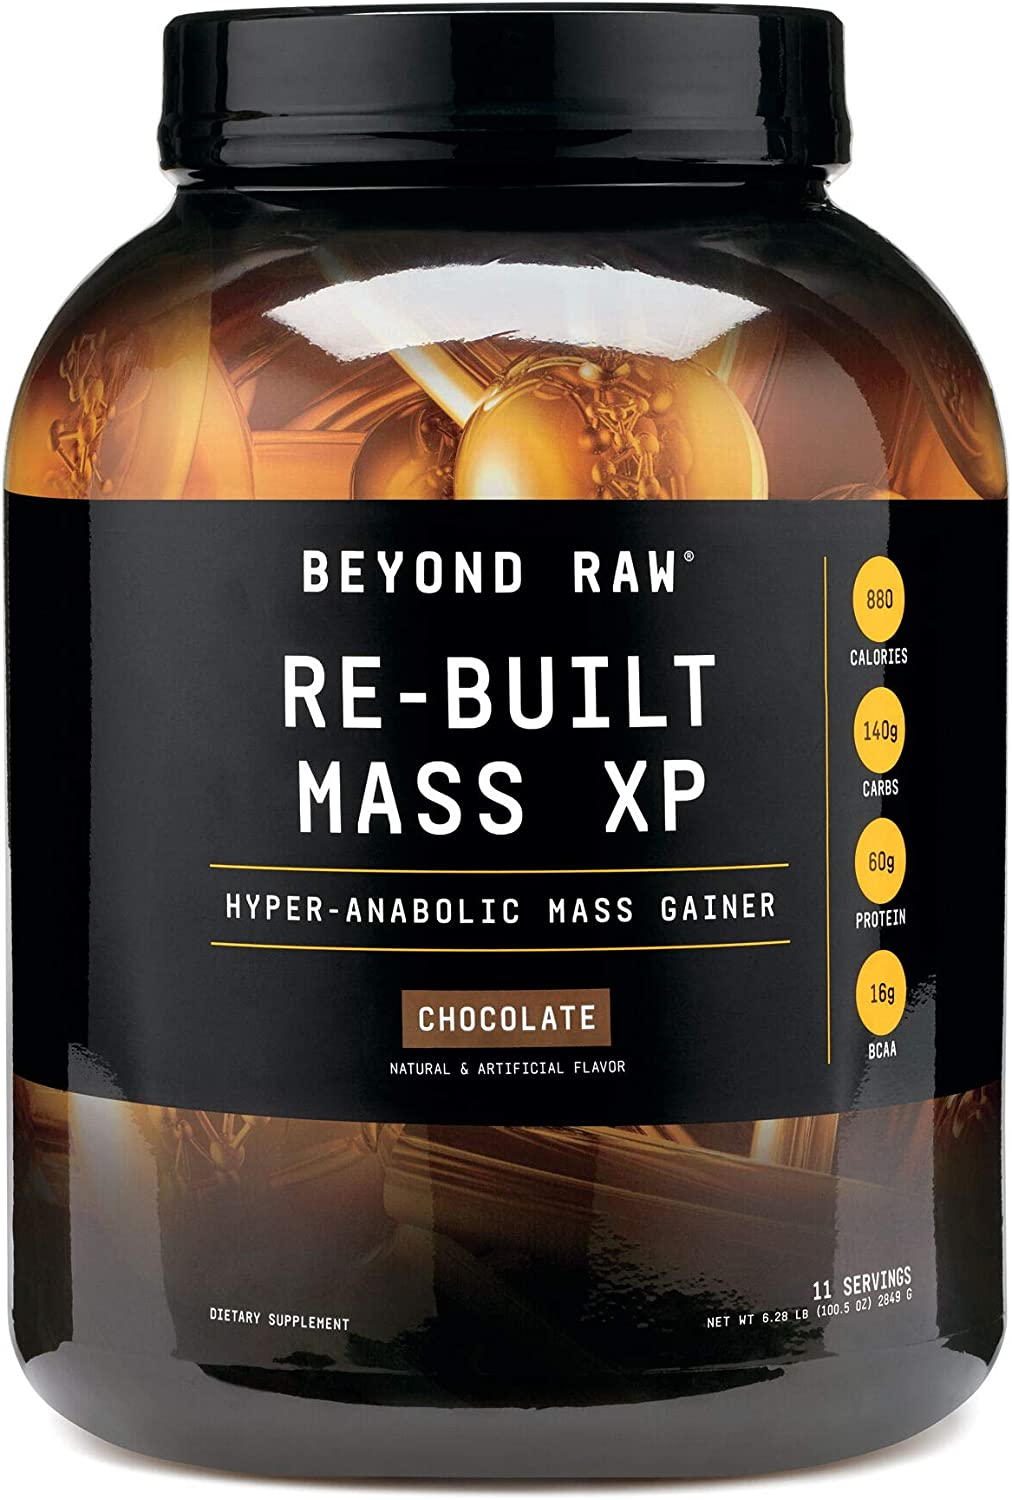 BEYOND RAW Popular standard Re-Built Mass Contai XP Fixed price for sale Hyper-Anabolic Gainer